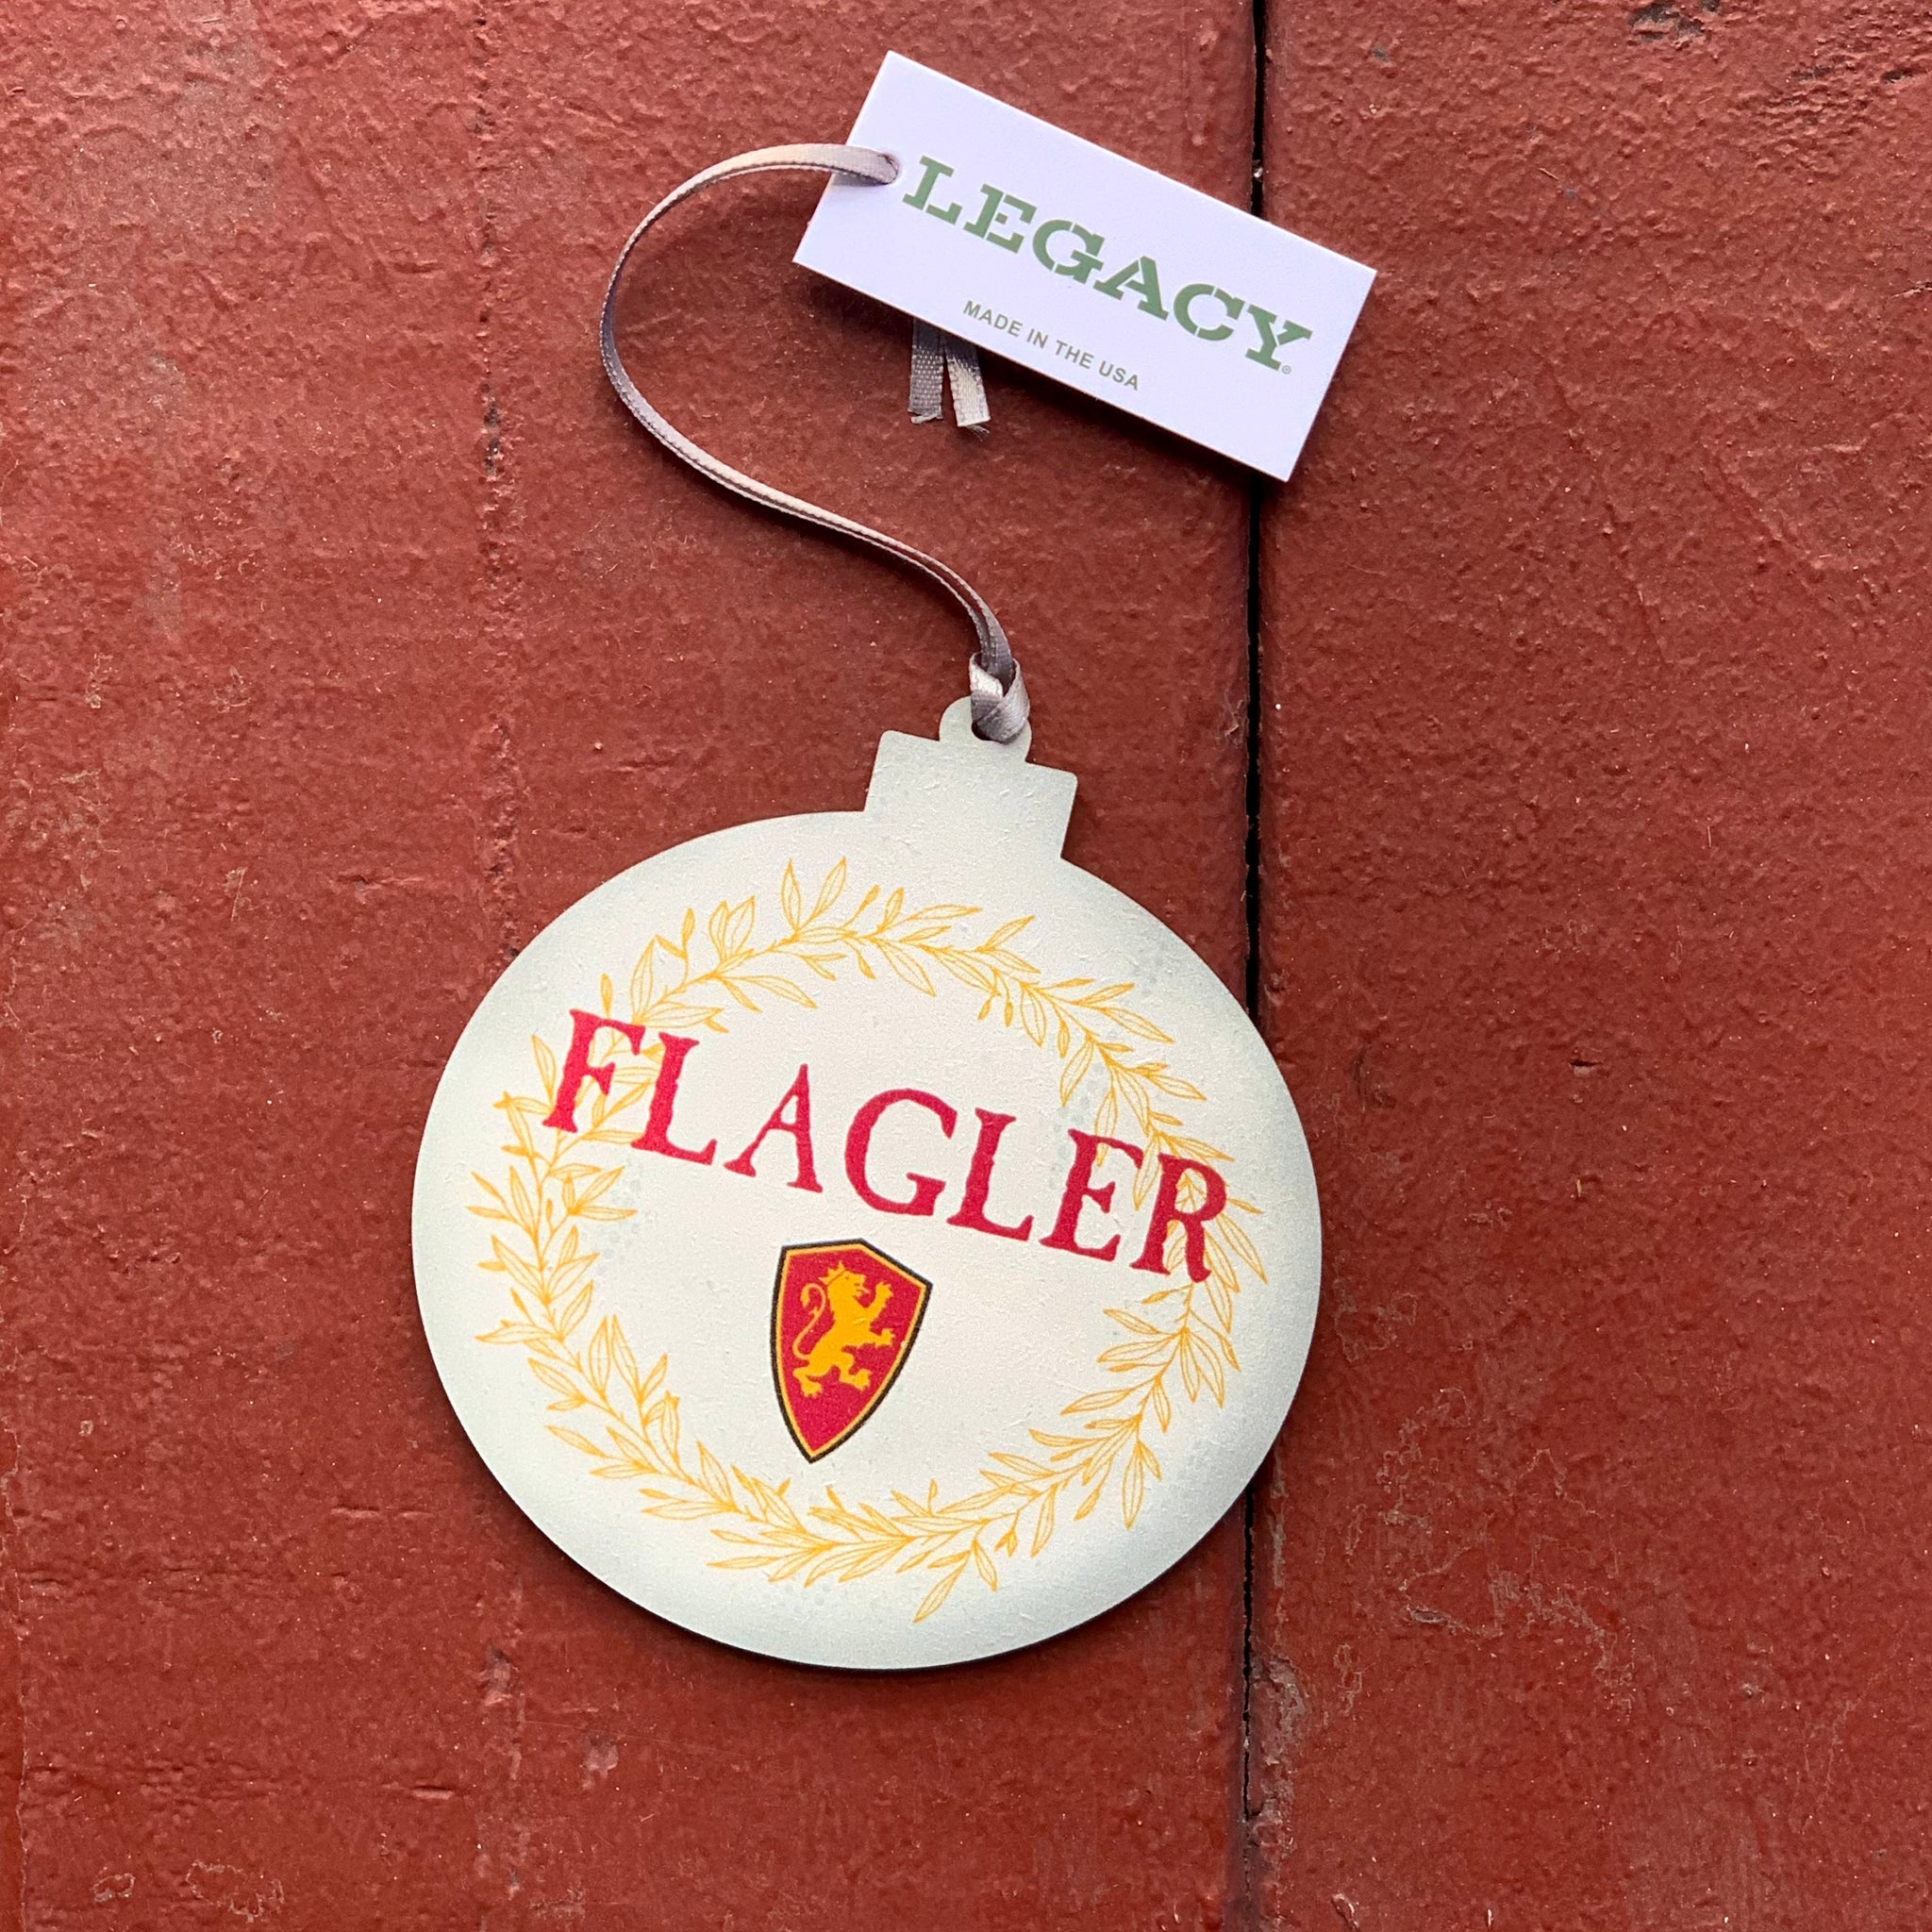 Round ornament that is a cream color with a gold wreath outlining ornament and it has flagler printed in red with red and gold lion shield